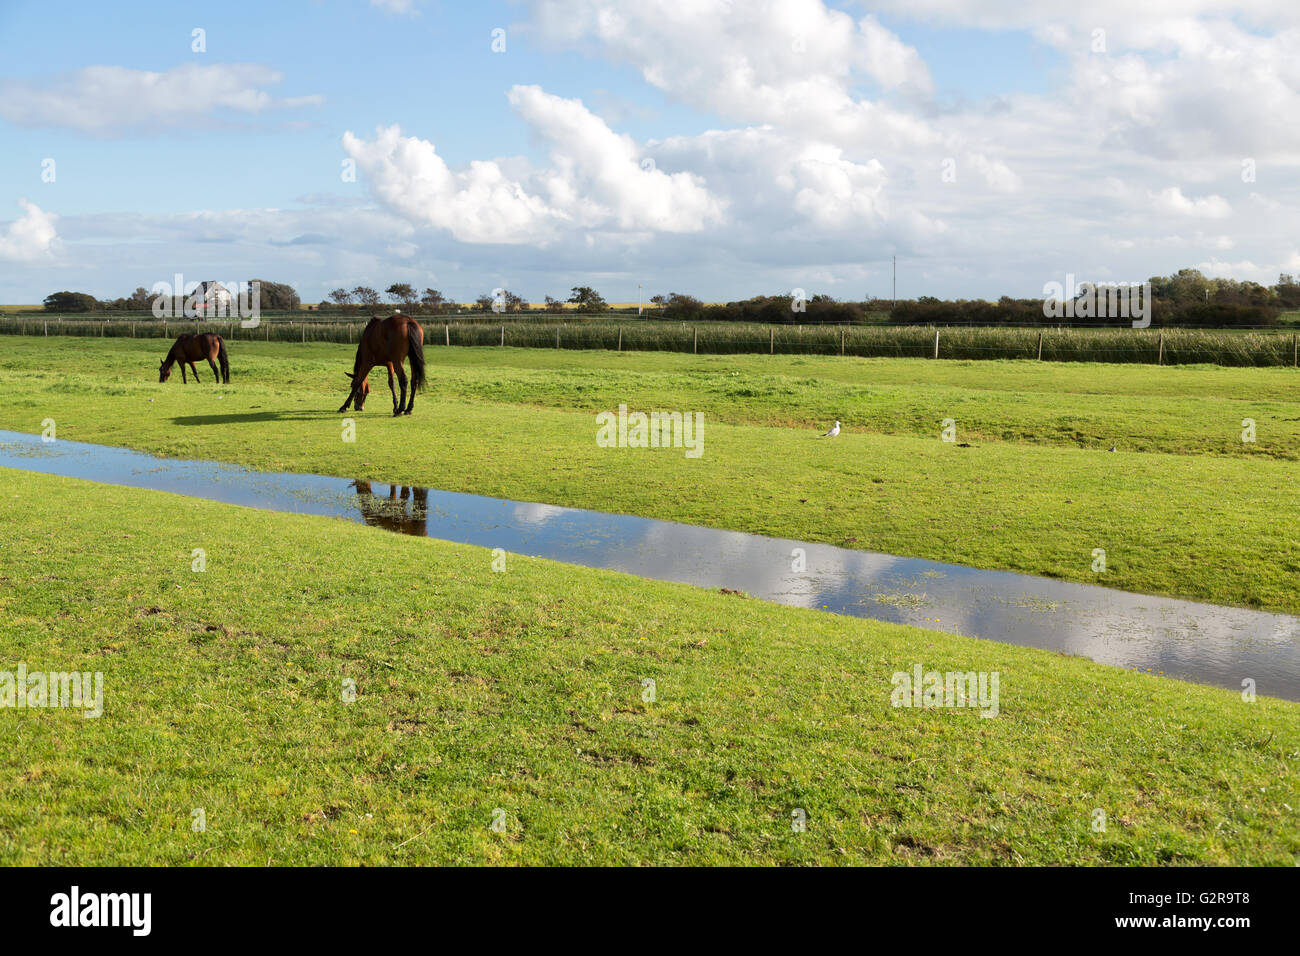 20.09.2015, Neuwerk, Hamburg, Germany - Horses on a way to the island Neuwerk in the Wadden Sea. Neuwerk you can walk around in two hours on foot, has about 40 inhabitants and belongs to Hamburg. / The small Iceland Neuwerk lies in the mudflats of the North Sea, has about 40 inhabitants and belongs to the region of Hamburg. 00A150920D098CAROEX.JPG - NOT for SALE in G E R M A N Y, A U S T R I A, S W I T Z E R L A N D [MODEL RELEASE: NOT APPLICABLE, PROPERTY RELEASE: NO, (c) caro photo agency / Bastian, http://www.caro-images.com, info@carofoto.pl - Any use of this picture is subject to royalty! Stock Photo